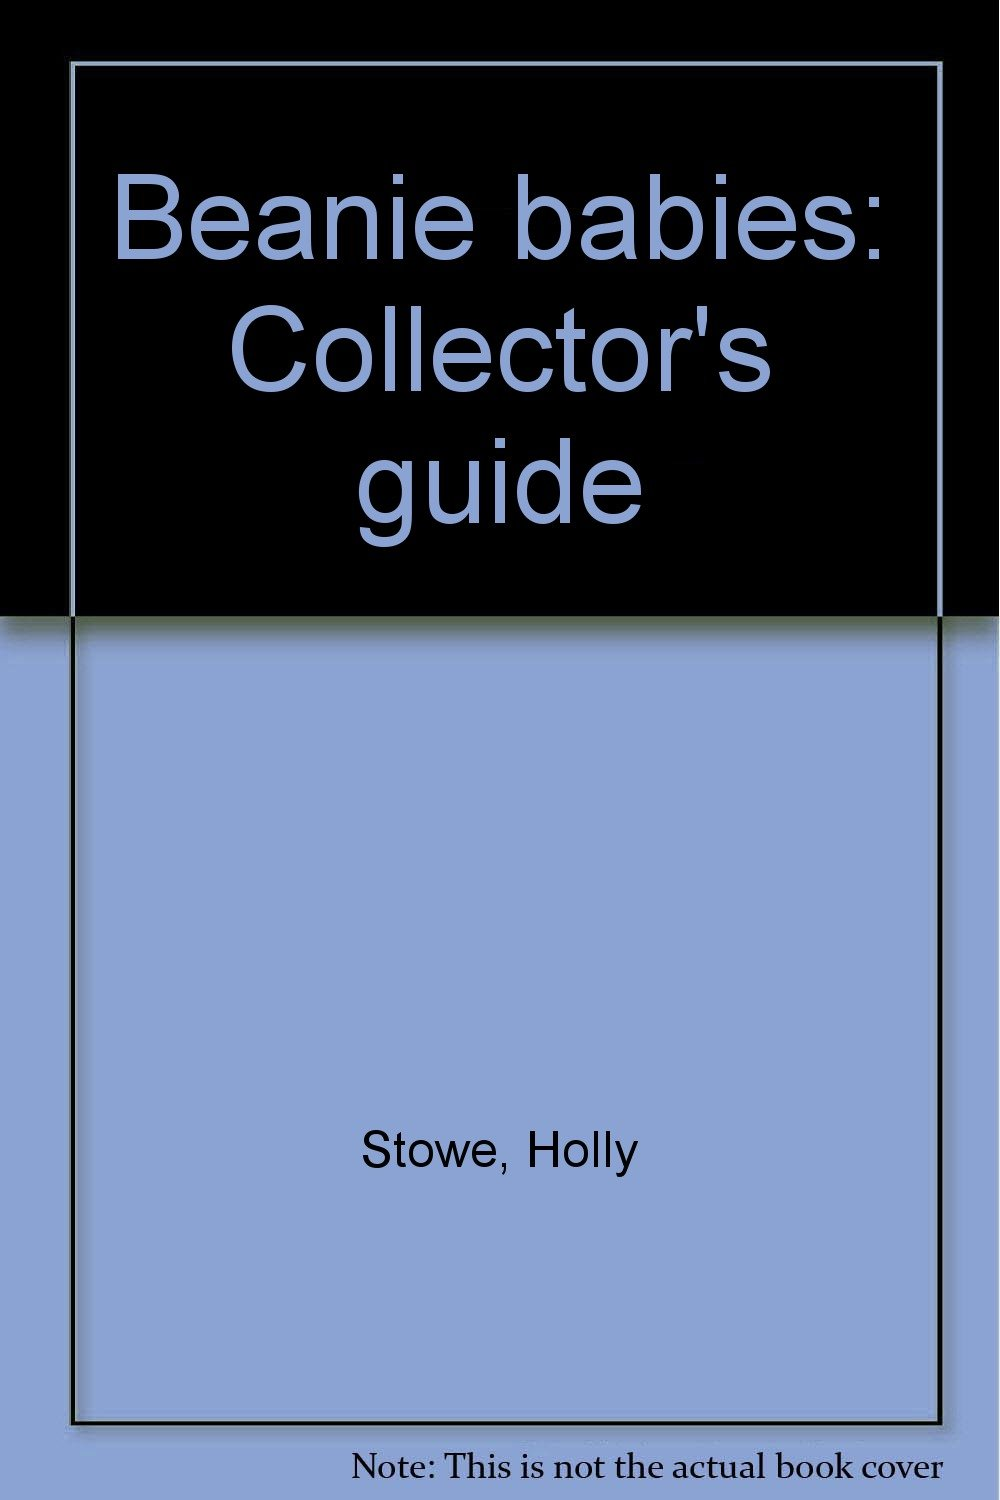 Beanie babies: Collector's guide